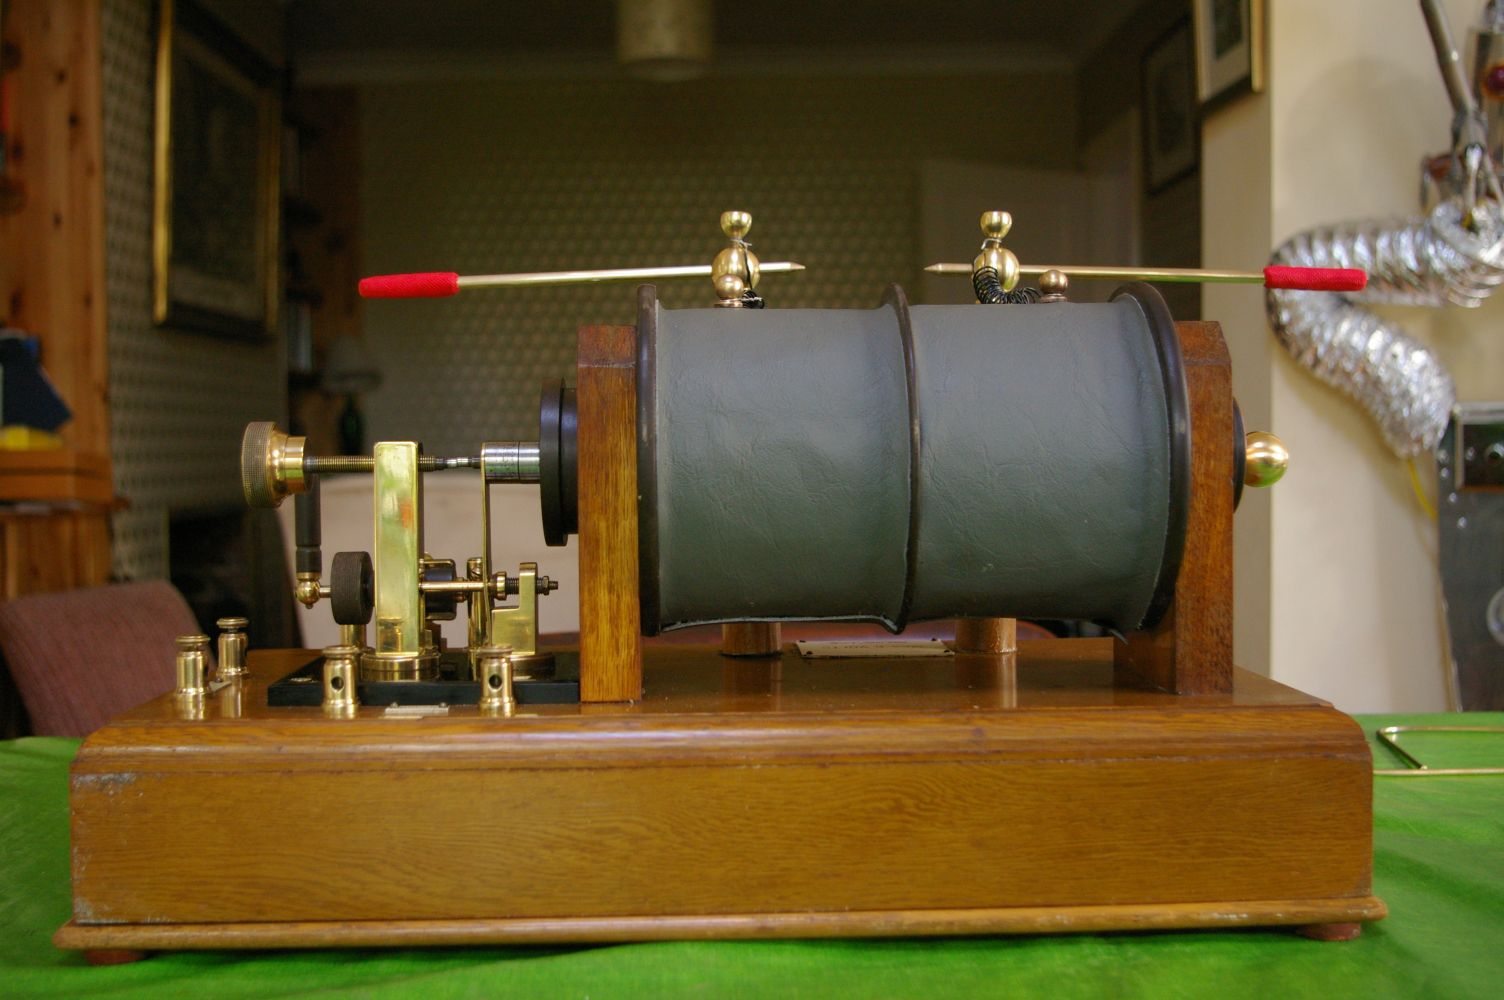 Ruhmkorff Induction coil reassembled